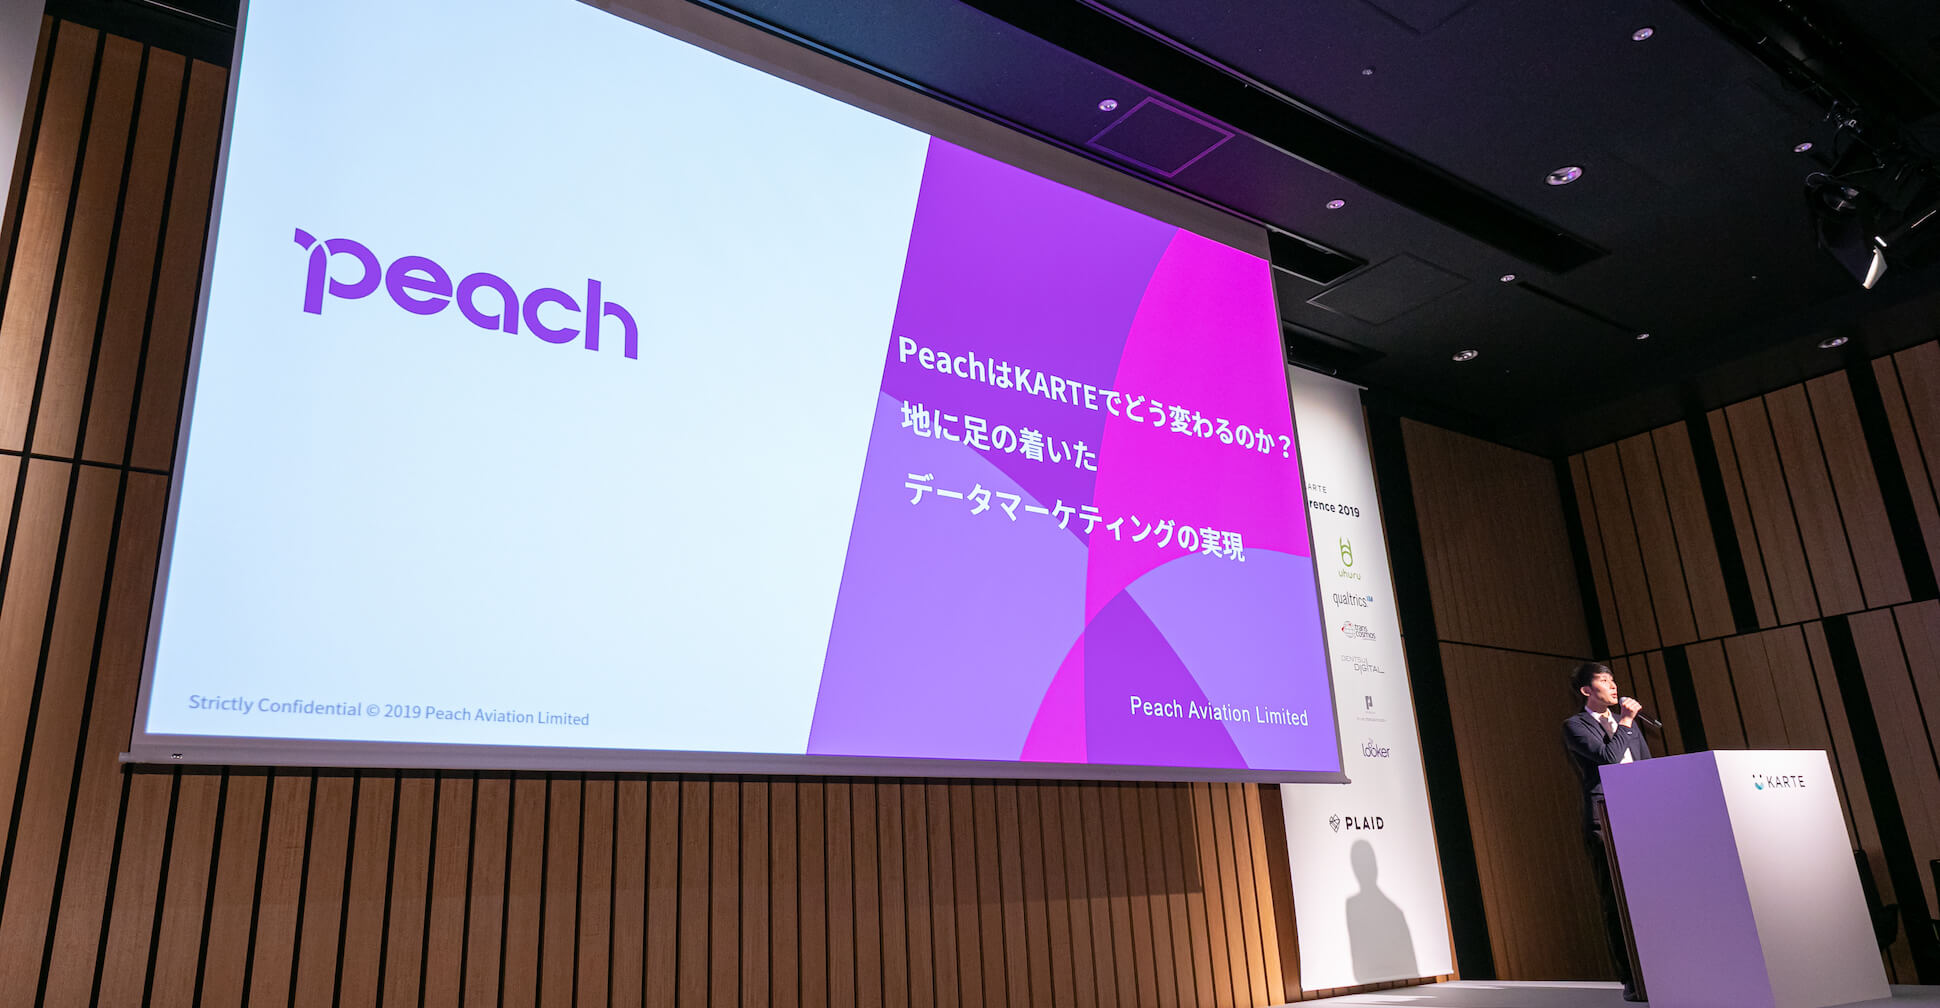 Peach Aviation株式会社